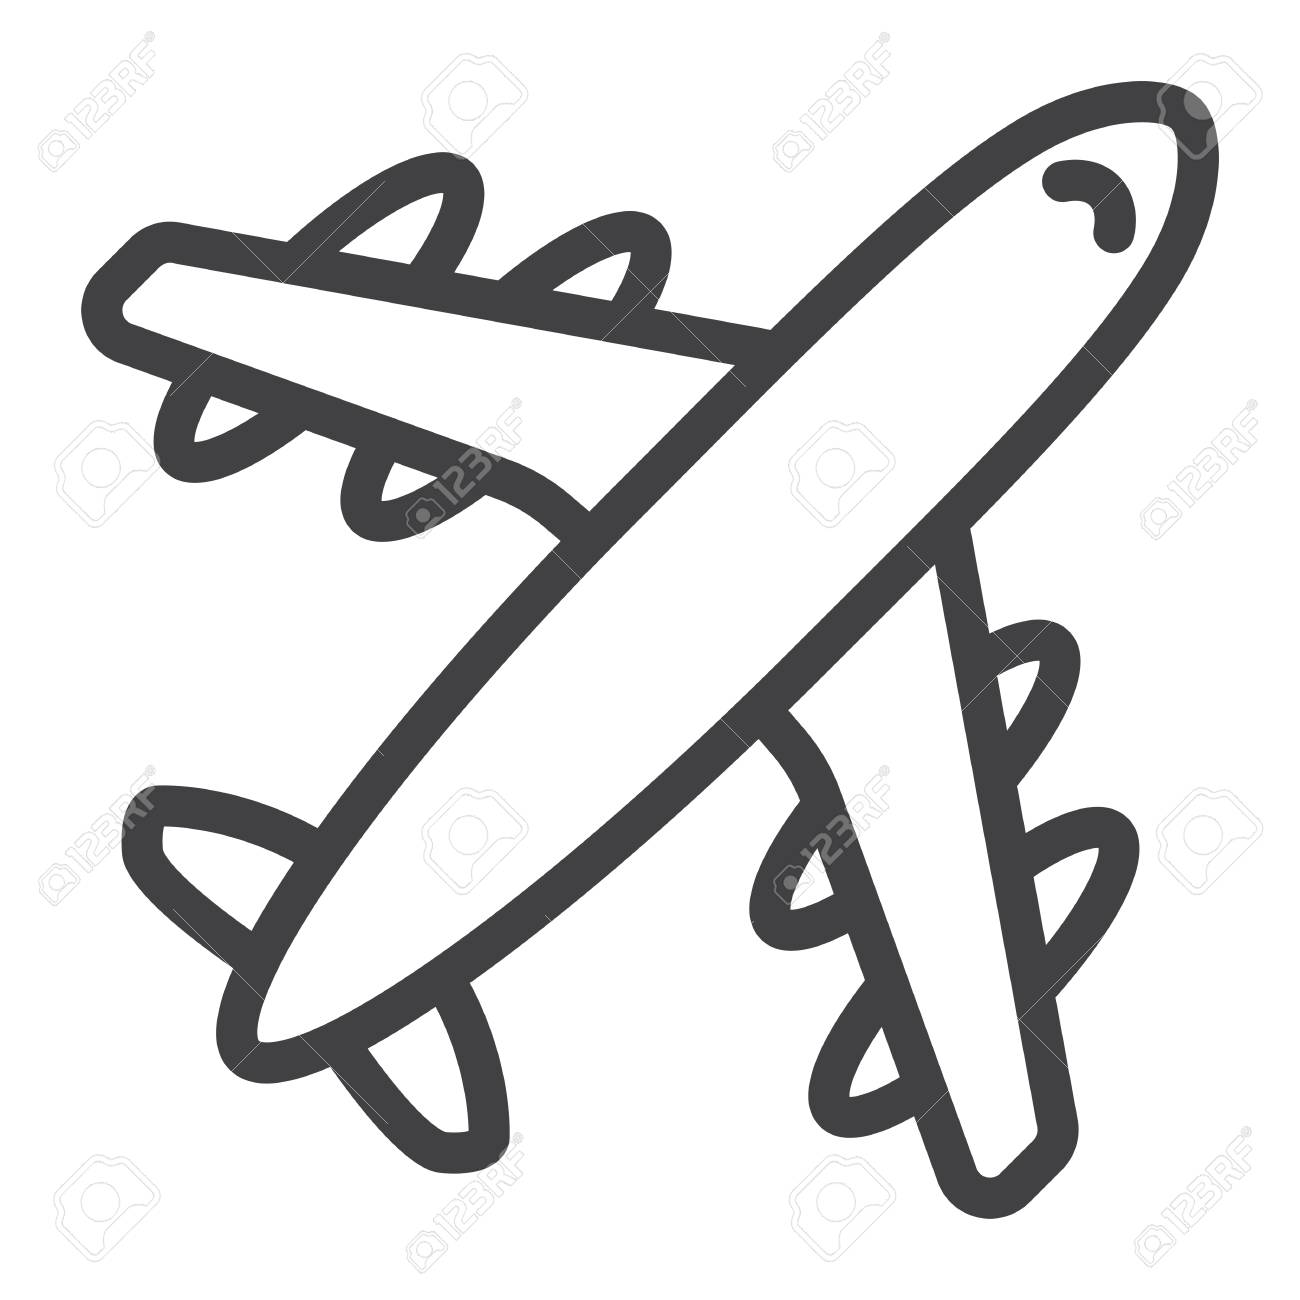 Airplane line icon, travel and transport, aircraft vector.